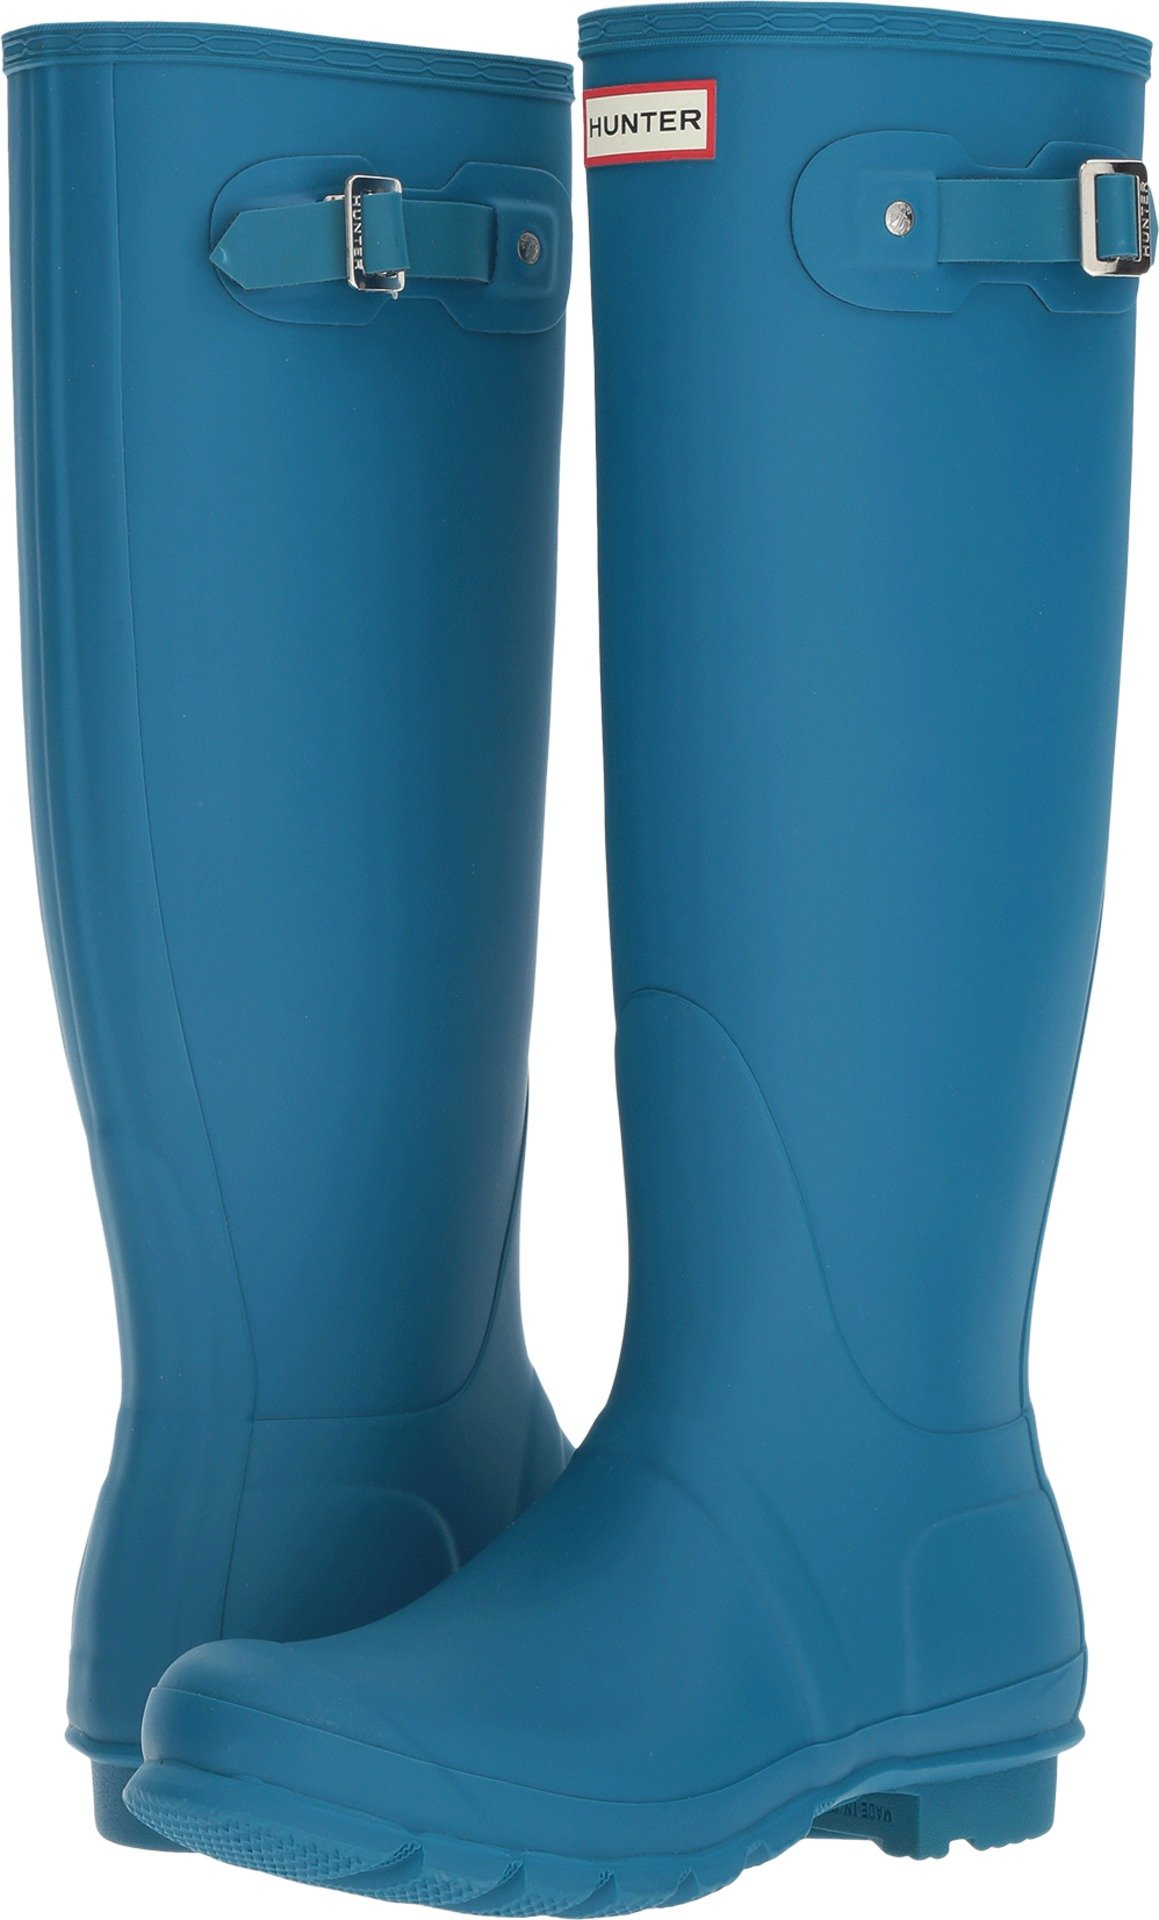 Hunter Women's Original Tall Ocean Blu Rain Boots - 8 B(M) US